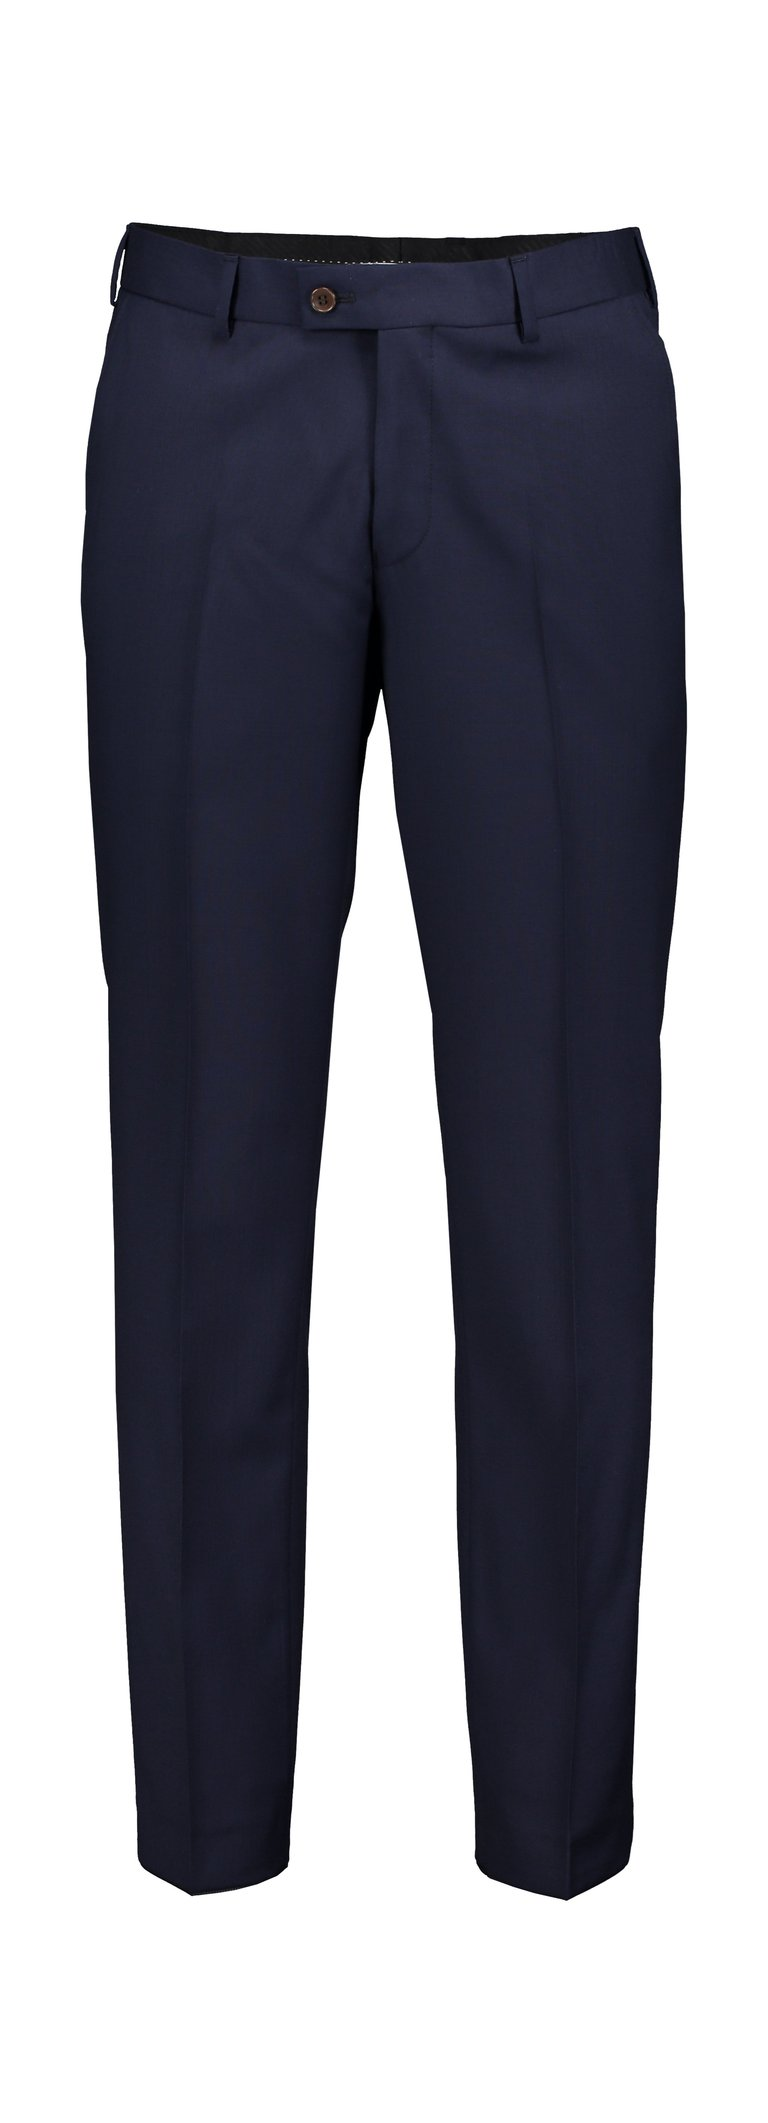 Turo Slim fit Helsinki trousers Navy